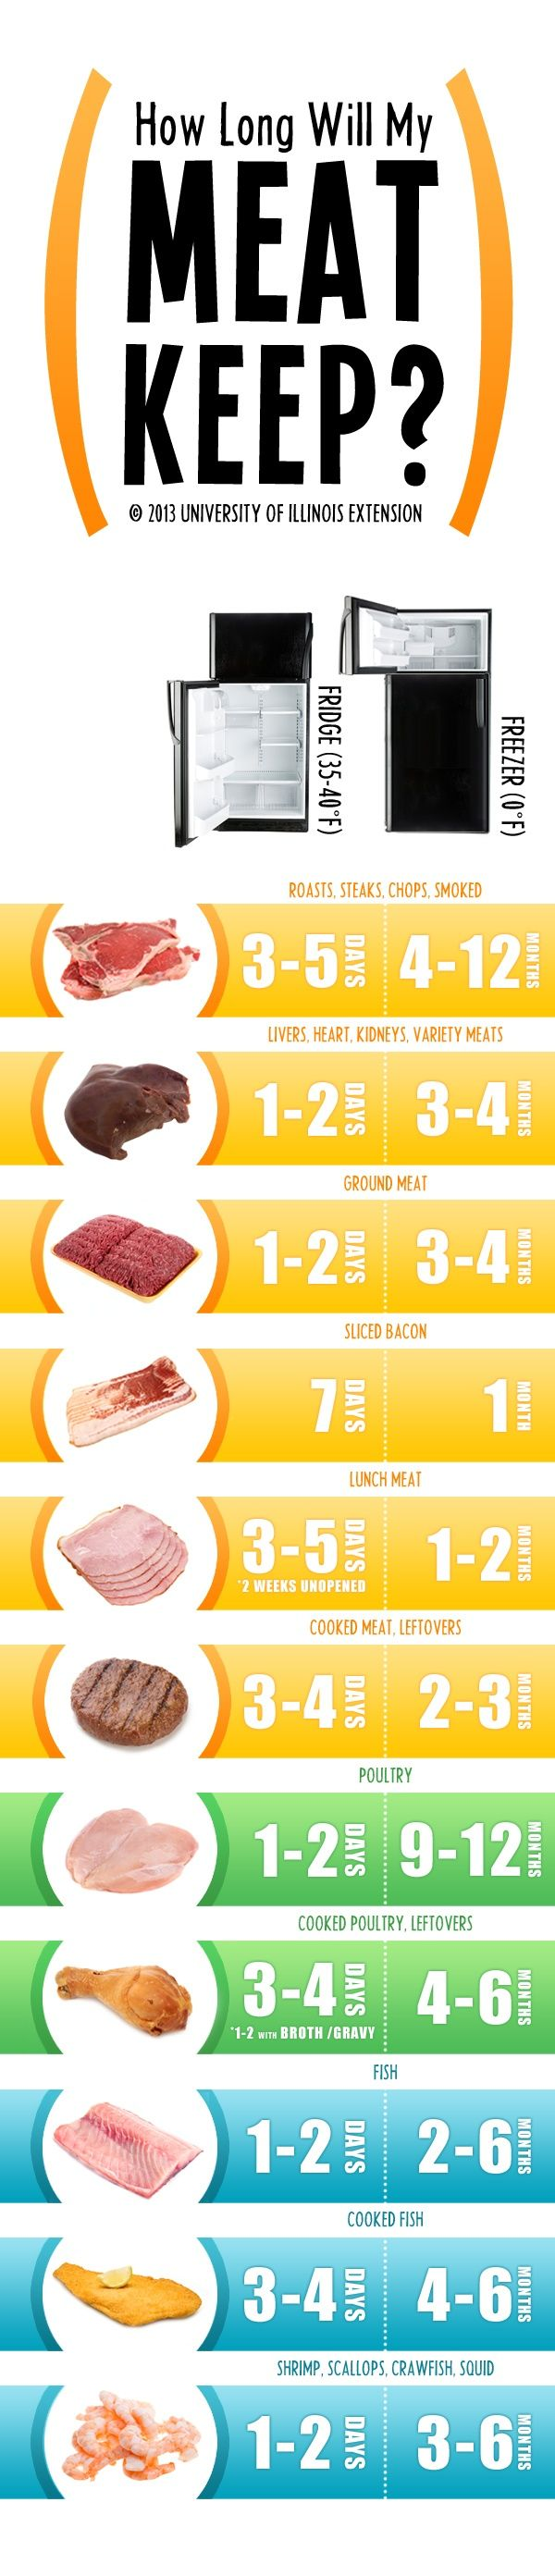 A handy visual for how long meat will keep in the fridge and freezer.  Good reference!